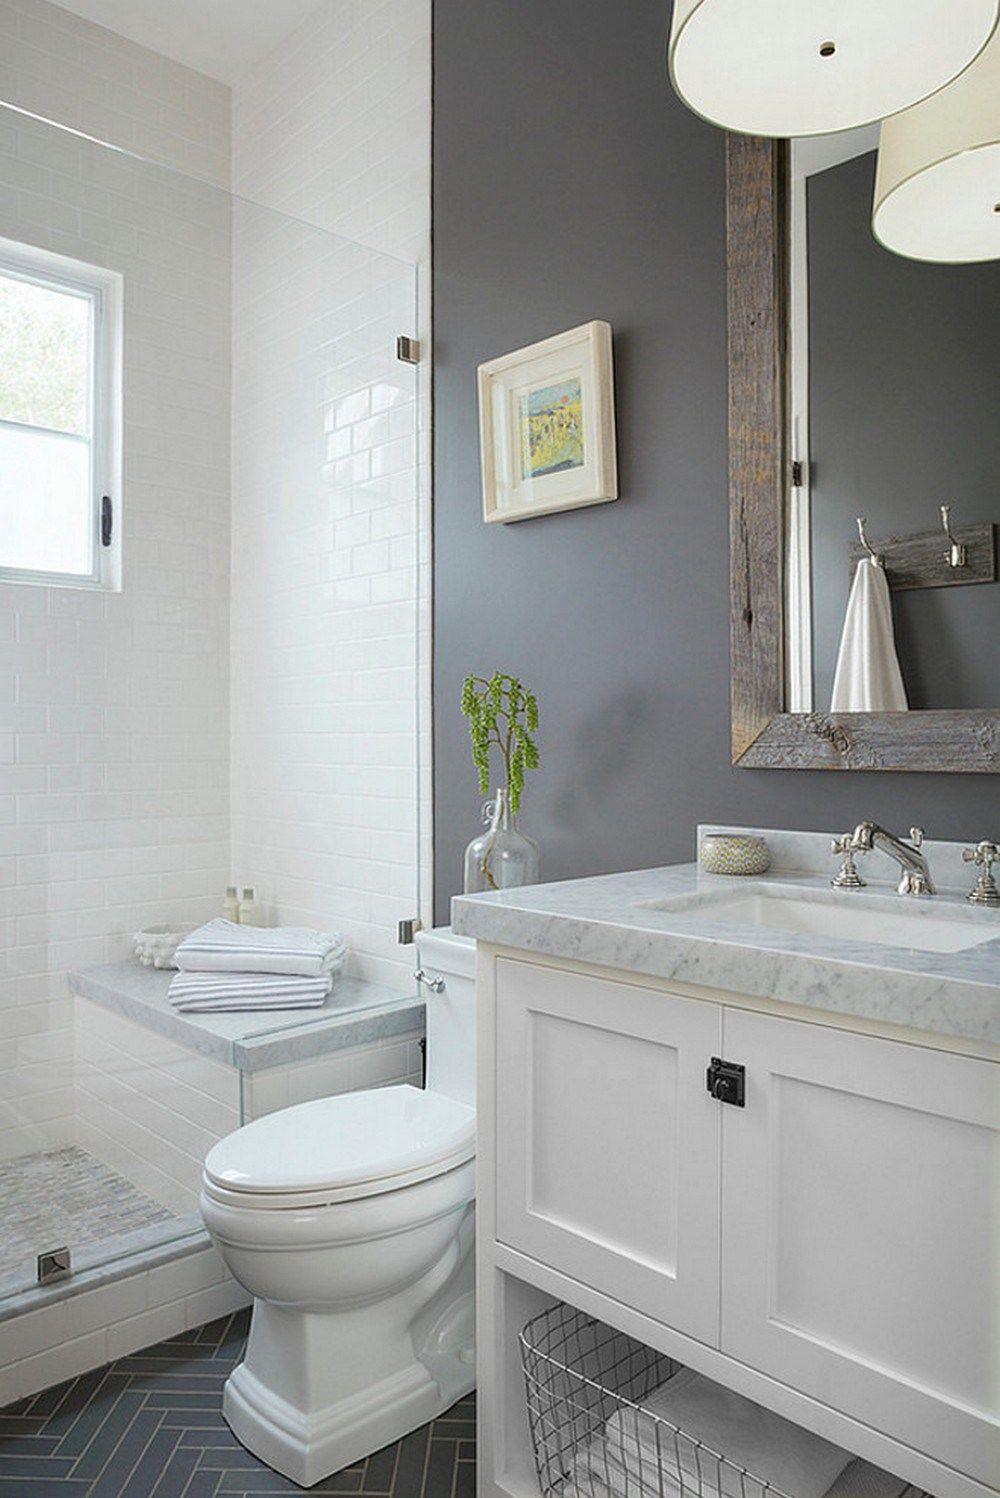 106 Clever Small Bathroom Decorating Ideas | Pinterest | Small ...